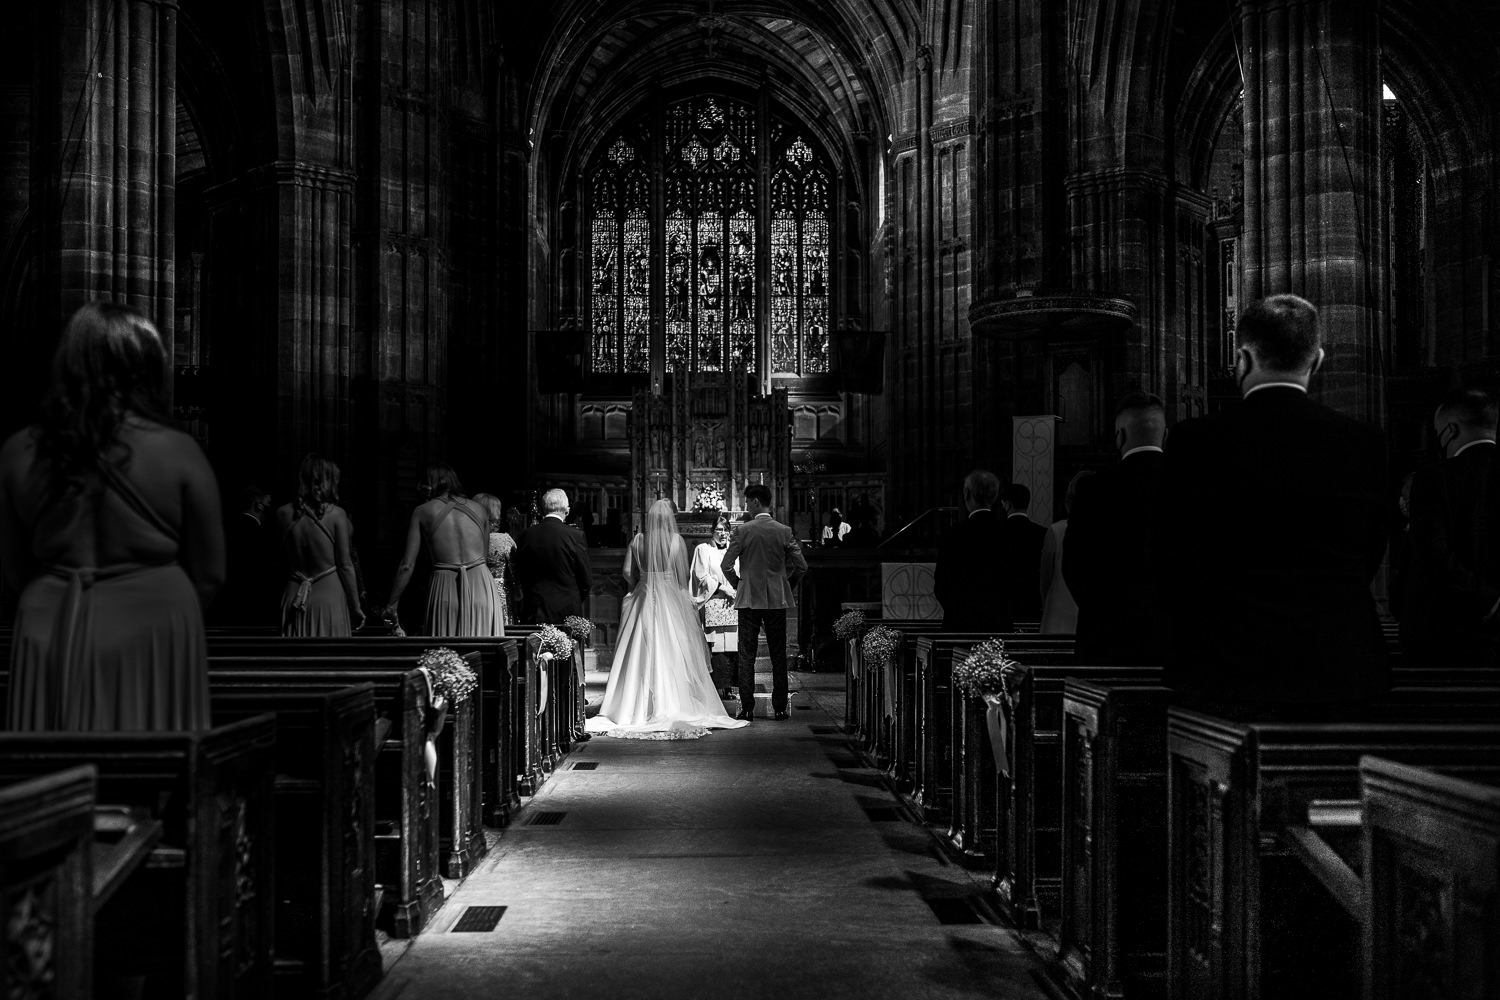 Photo of bride and groom from back of church